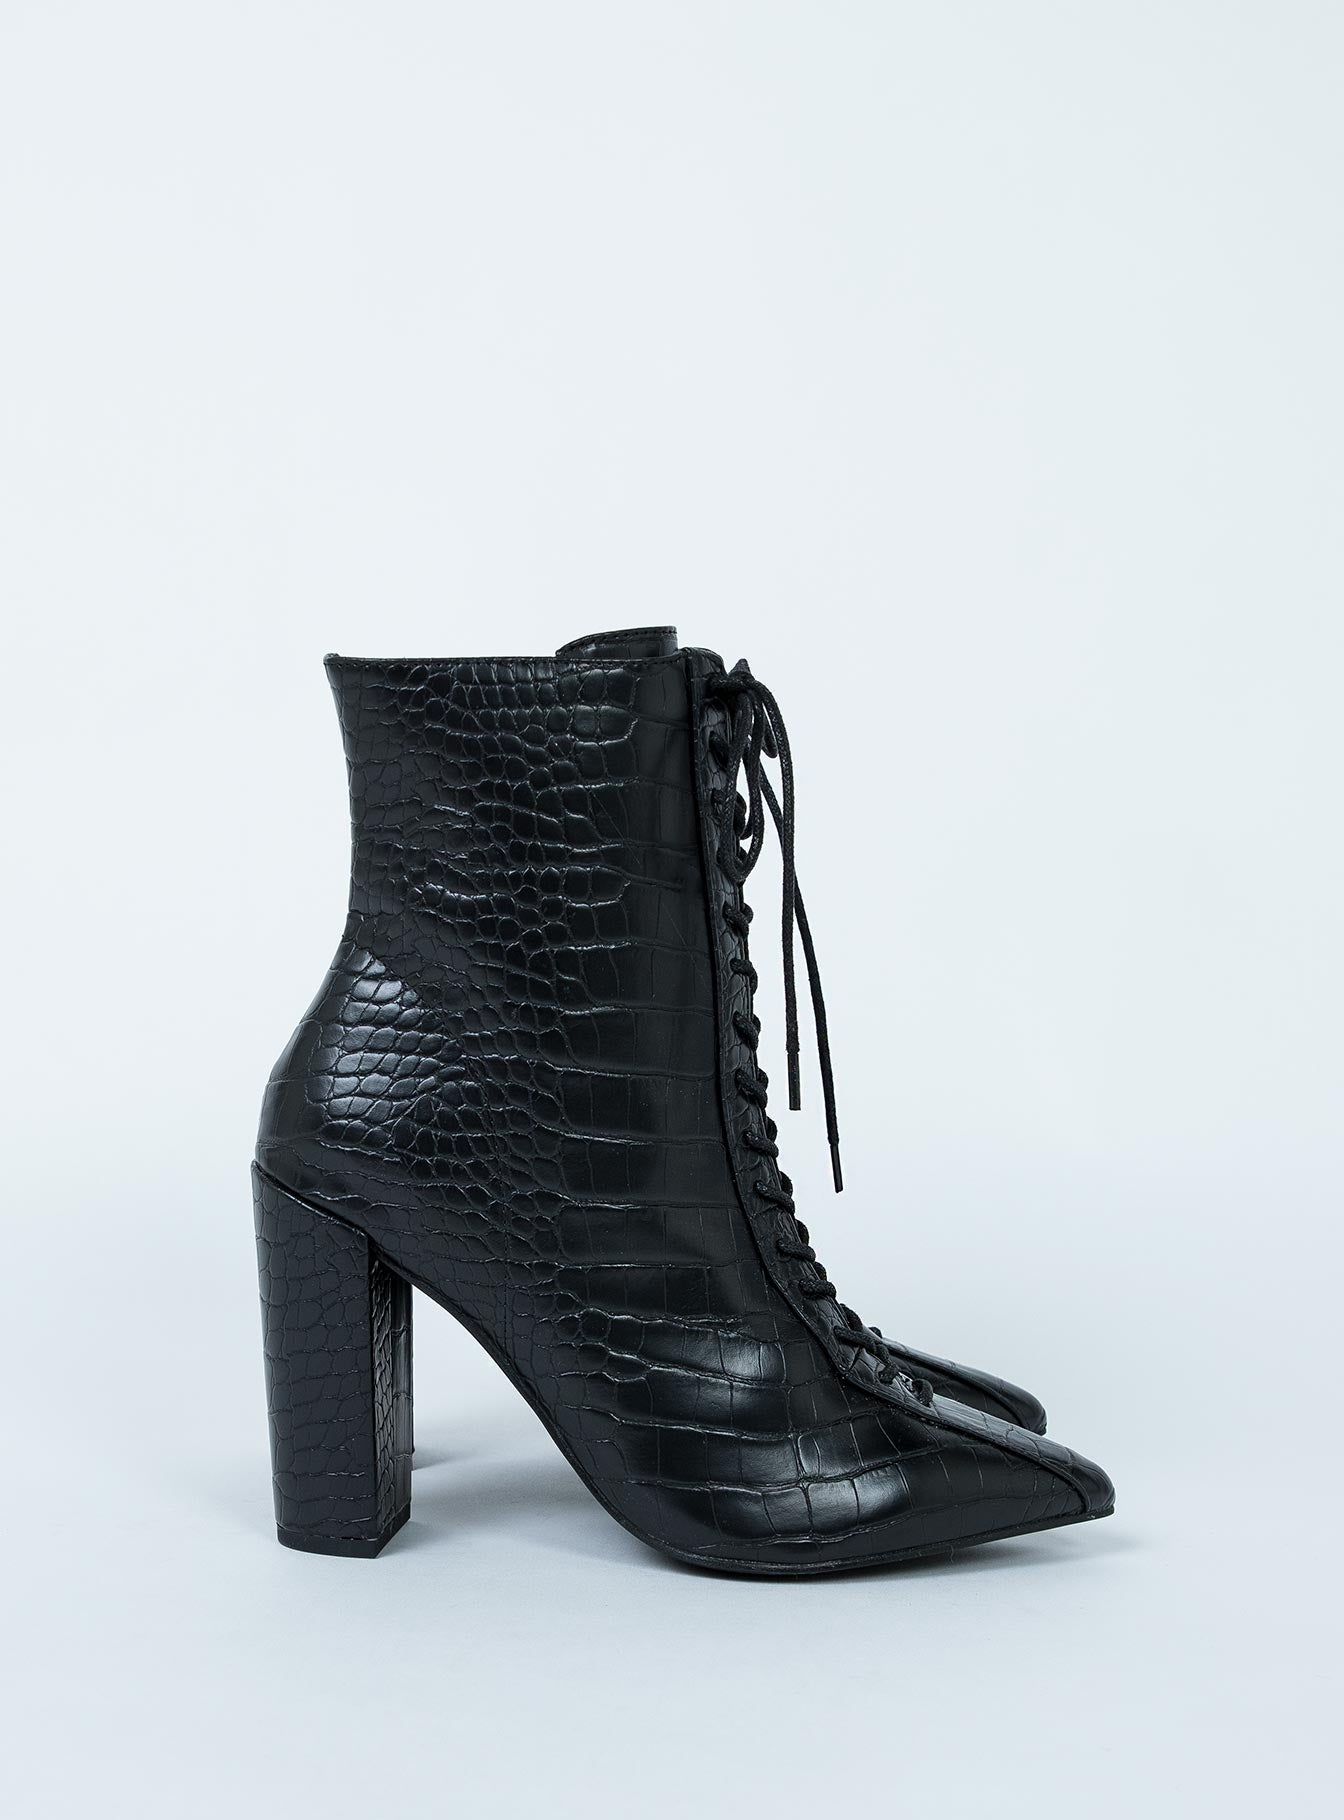 Therapy Paisley Boot Black Croc